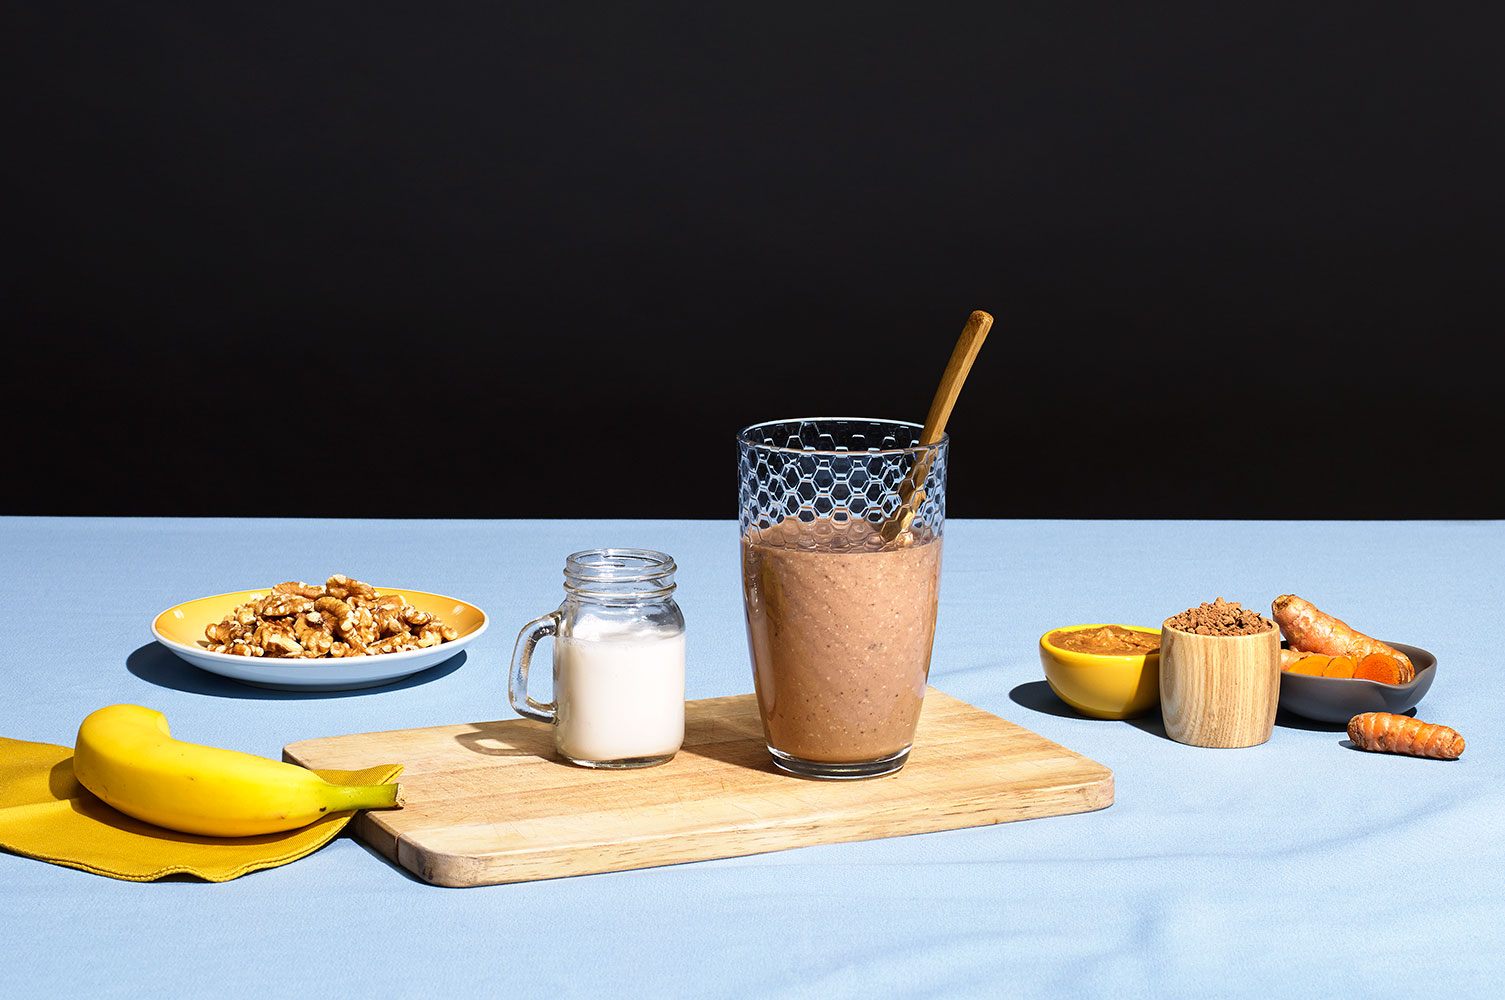 food_beverages_smoothie_banana_chocolate